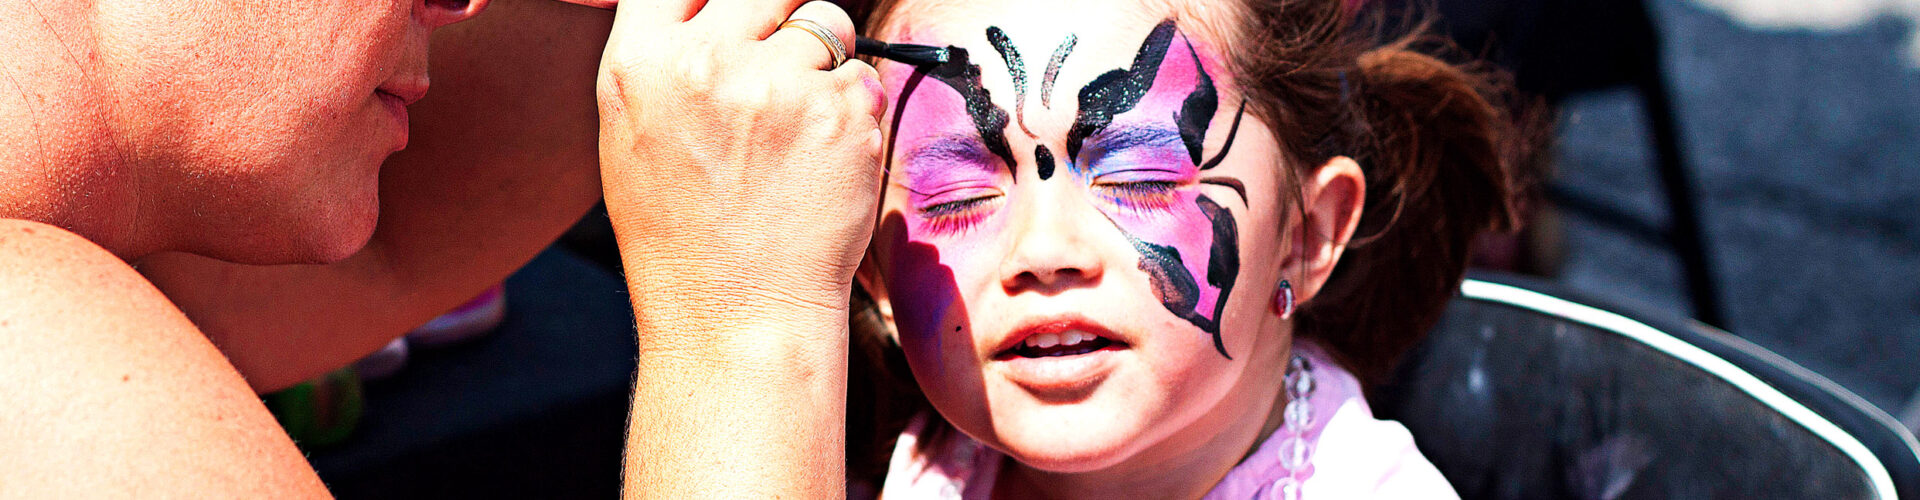 Close-up of a child getting her face painted